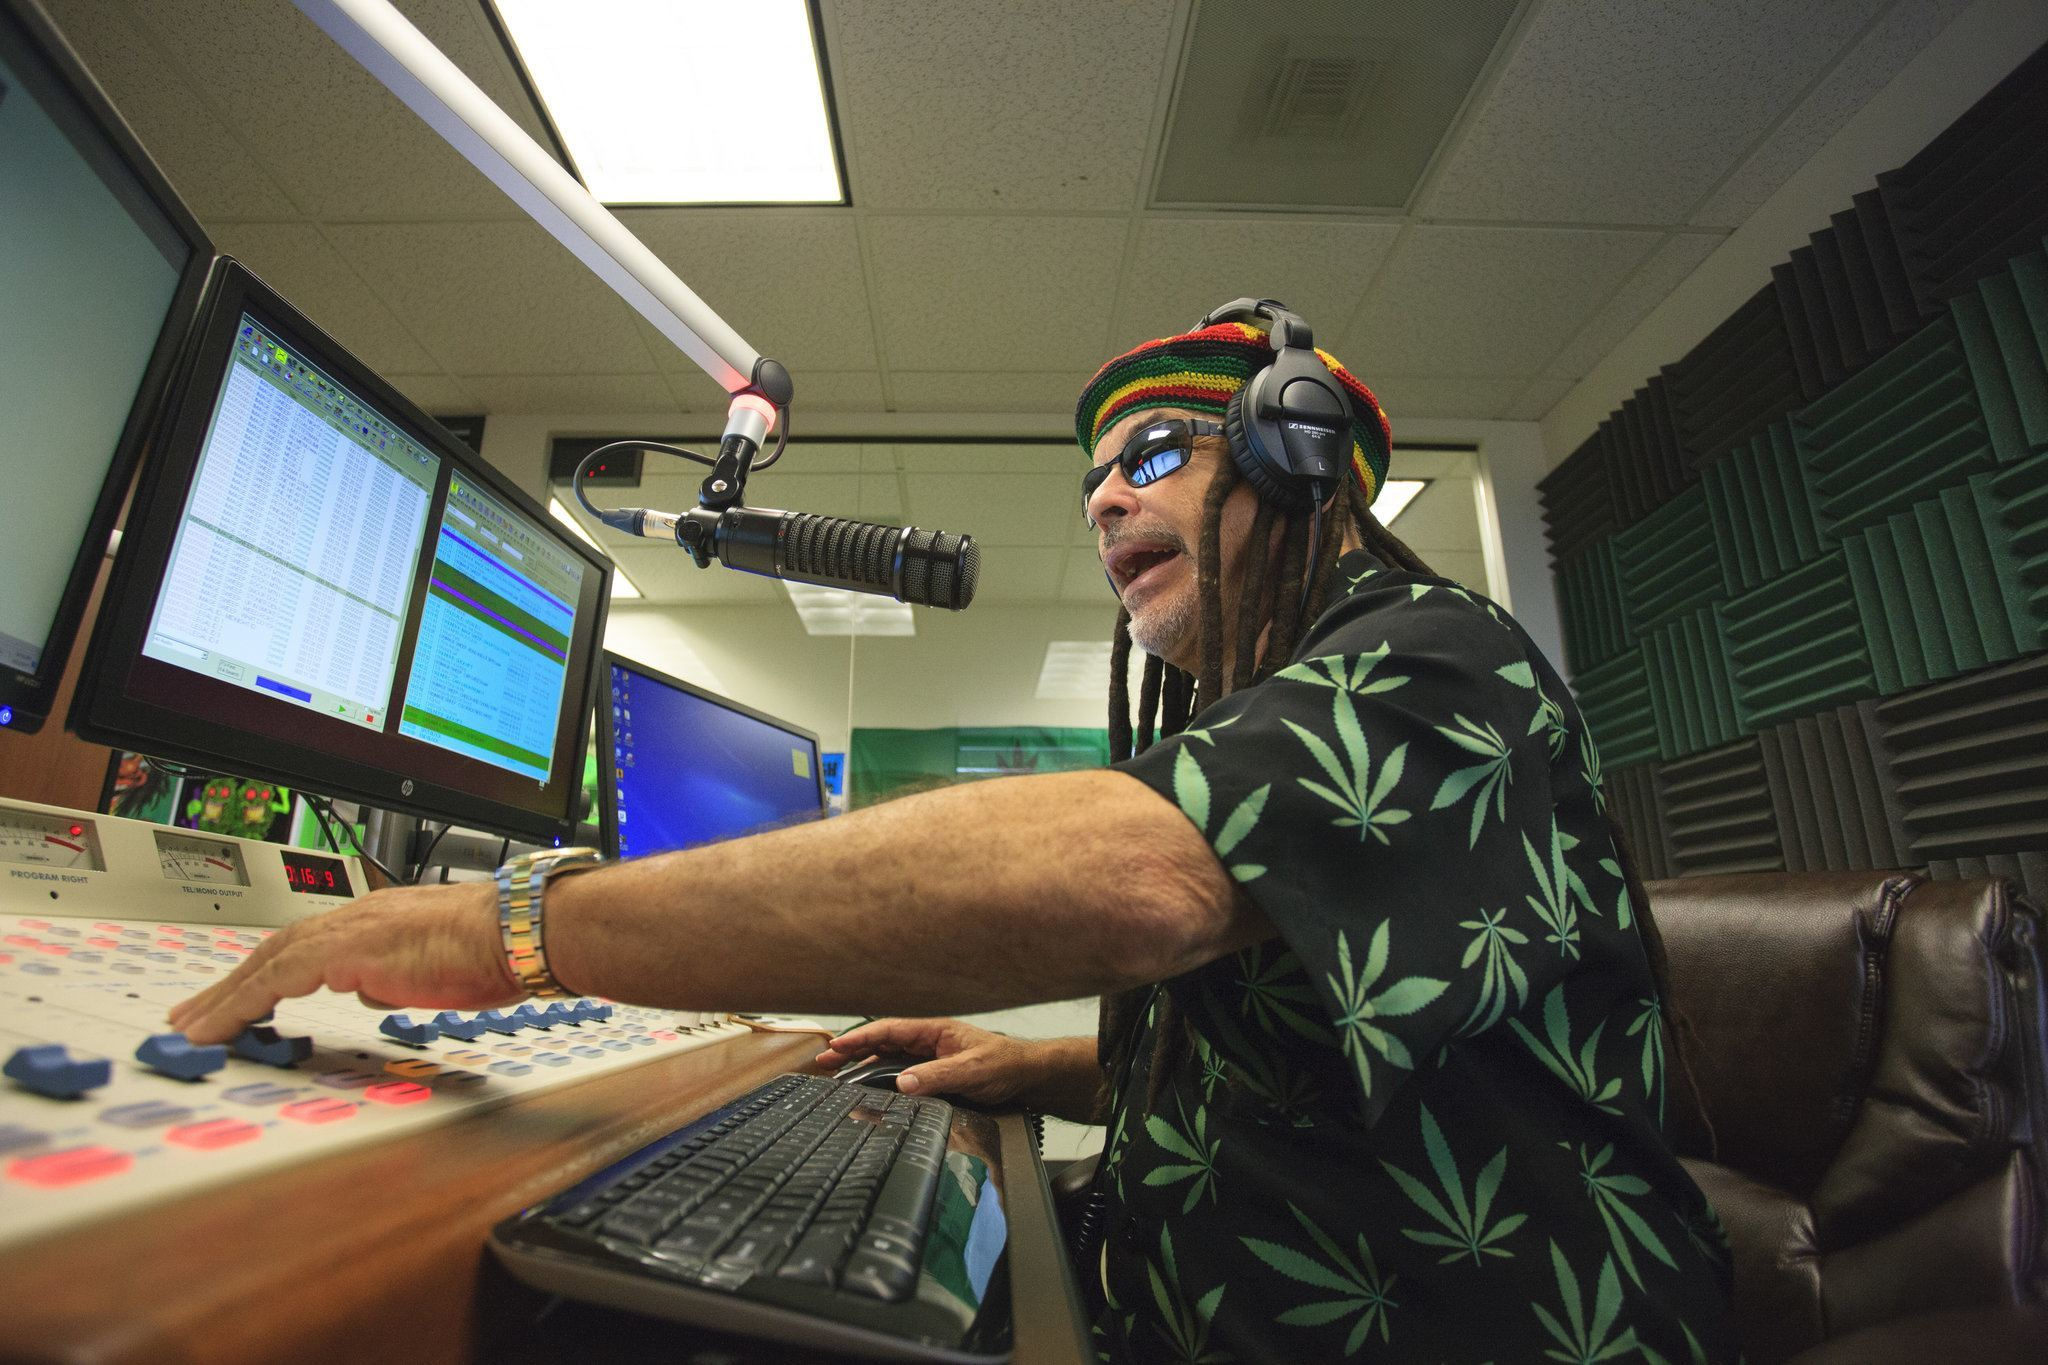 Image of Marc Paskin, who goes by the name Gary Ganja, on the air in the Smokin 94.1 studio in Denver. Credit Matthew Staver for The New York Times